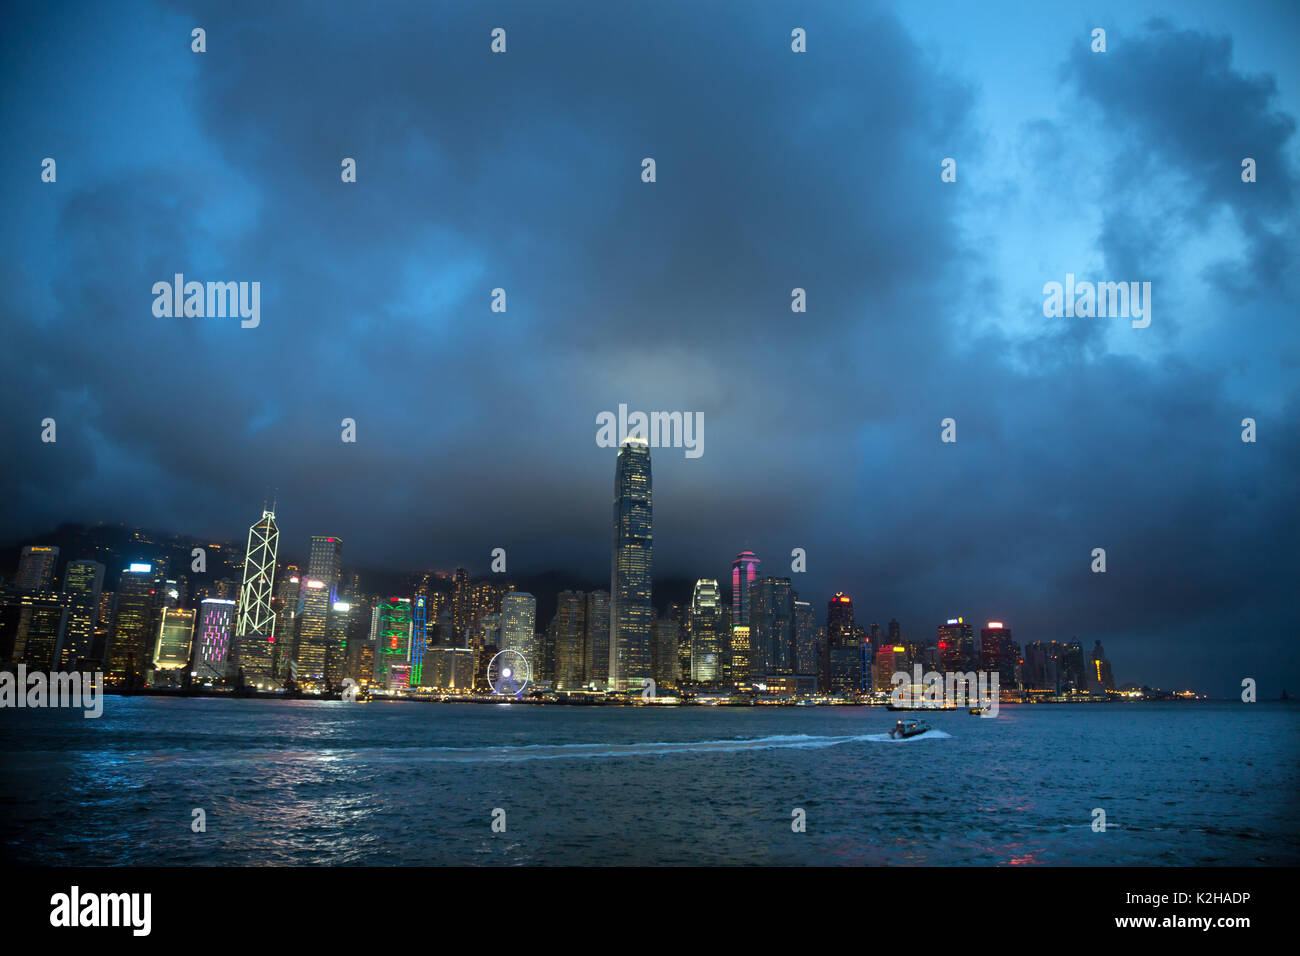 End of the day on the majestic Hong Kong skyline, seen from the Tsim Sha Tsui promenade. Stock Photo